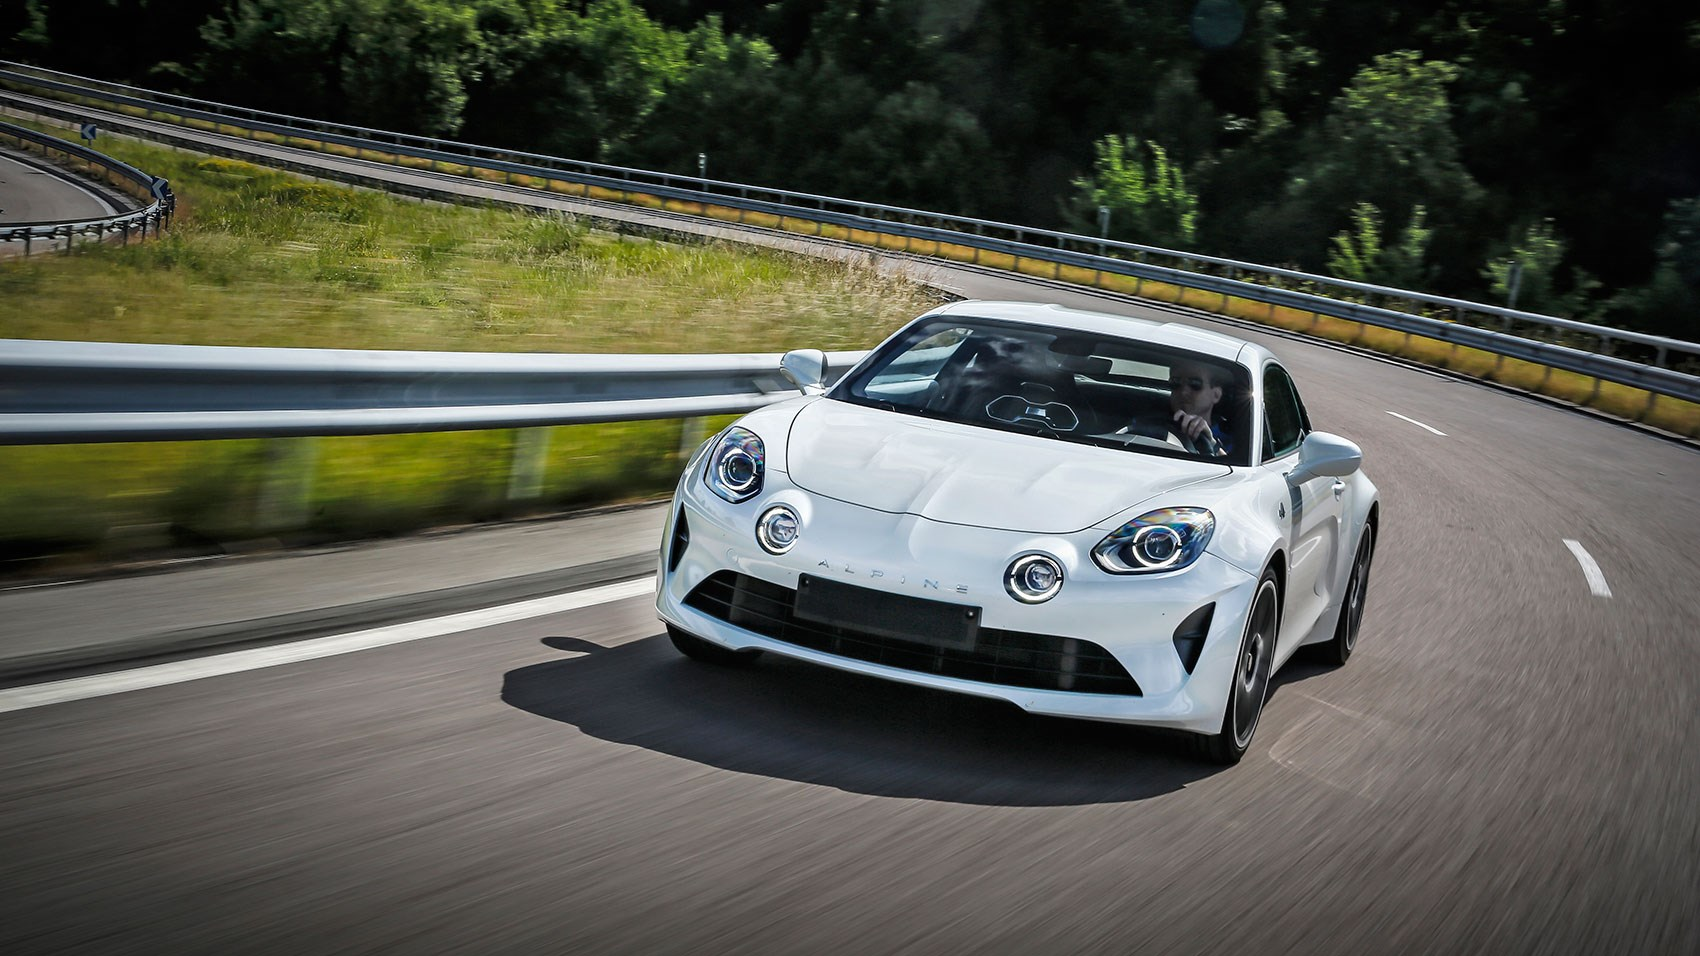 Alpine A110 review: specs, prices, 0-62mph times and more